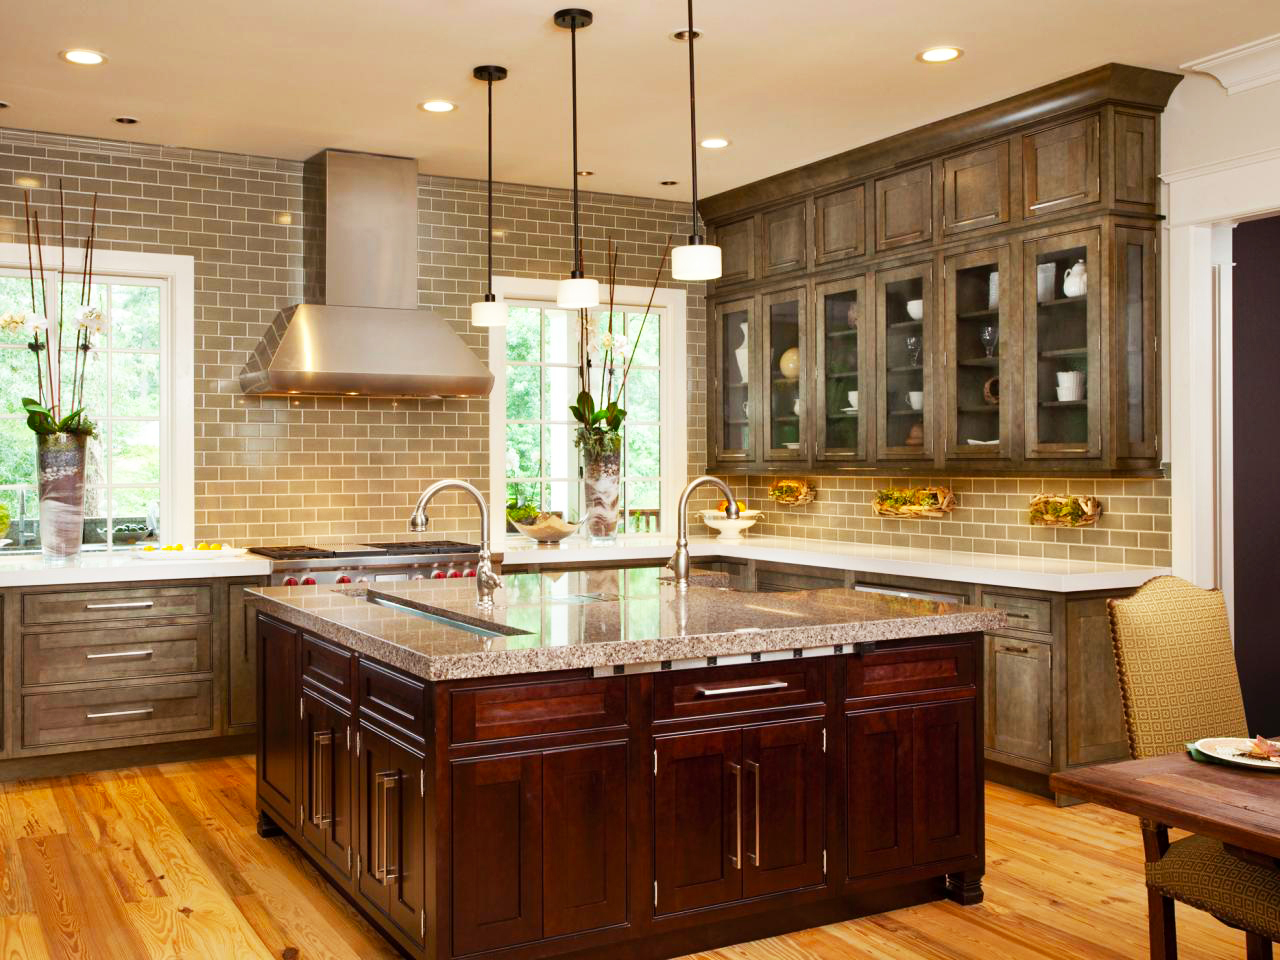 Ideas for custom kitchen cabinets roy home design Kitchen design home visit